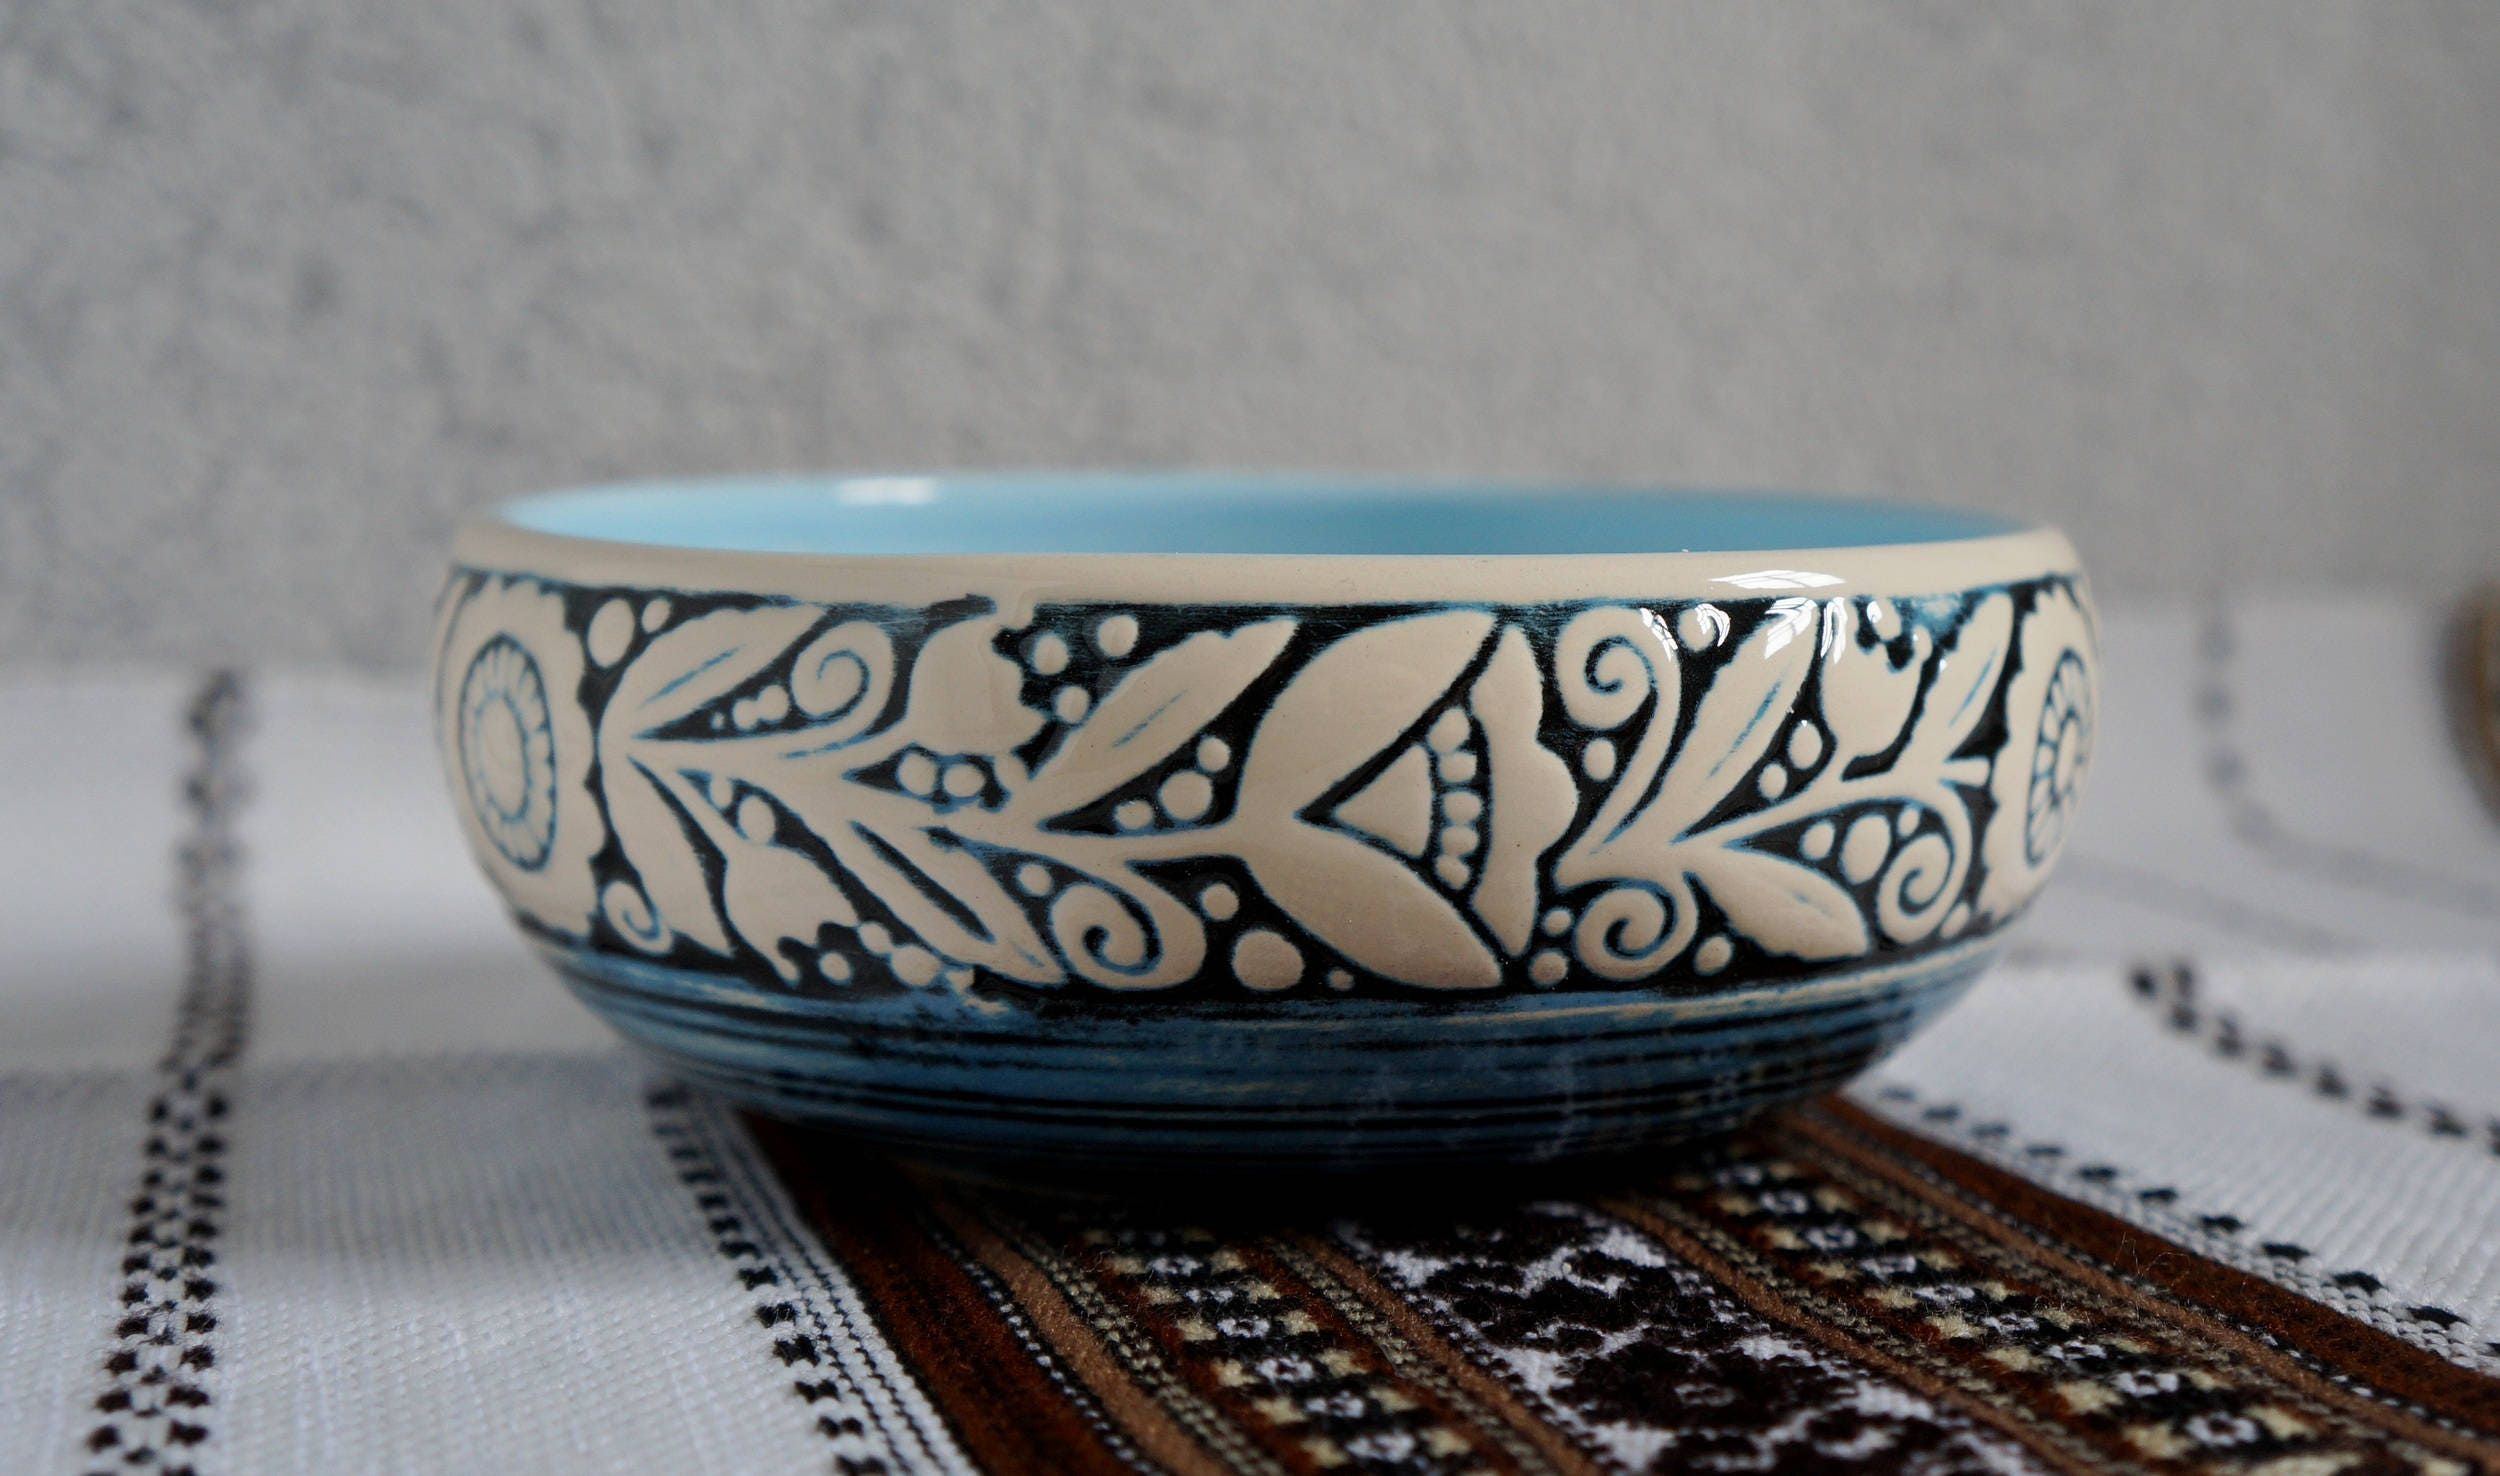 Wedding Gifts For Women: Pottery Bowl Wedding Gift Ideas For Women Snack Bowl Clay